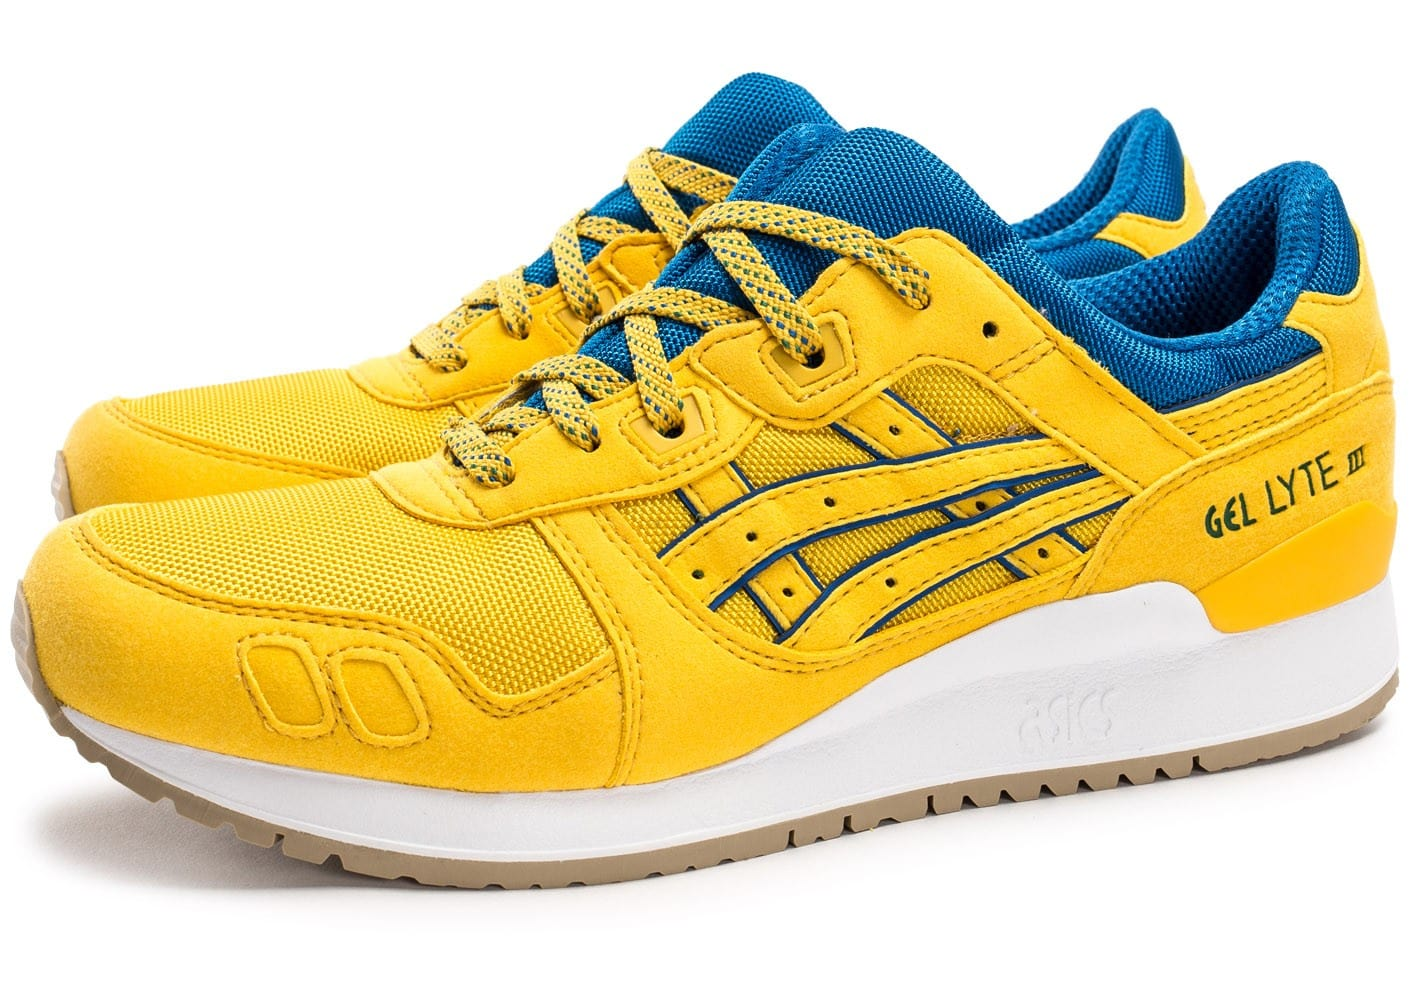 asics gel lyte iii rio pack jaune chaussures homme chausport. Black Bedroom Furniture Sets. Home Design Ideas